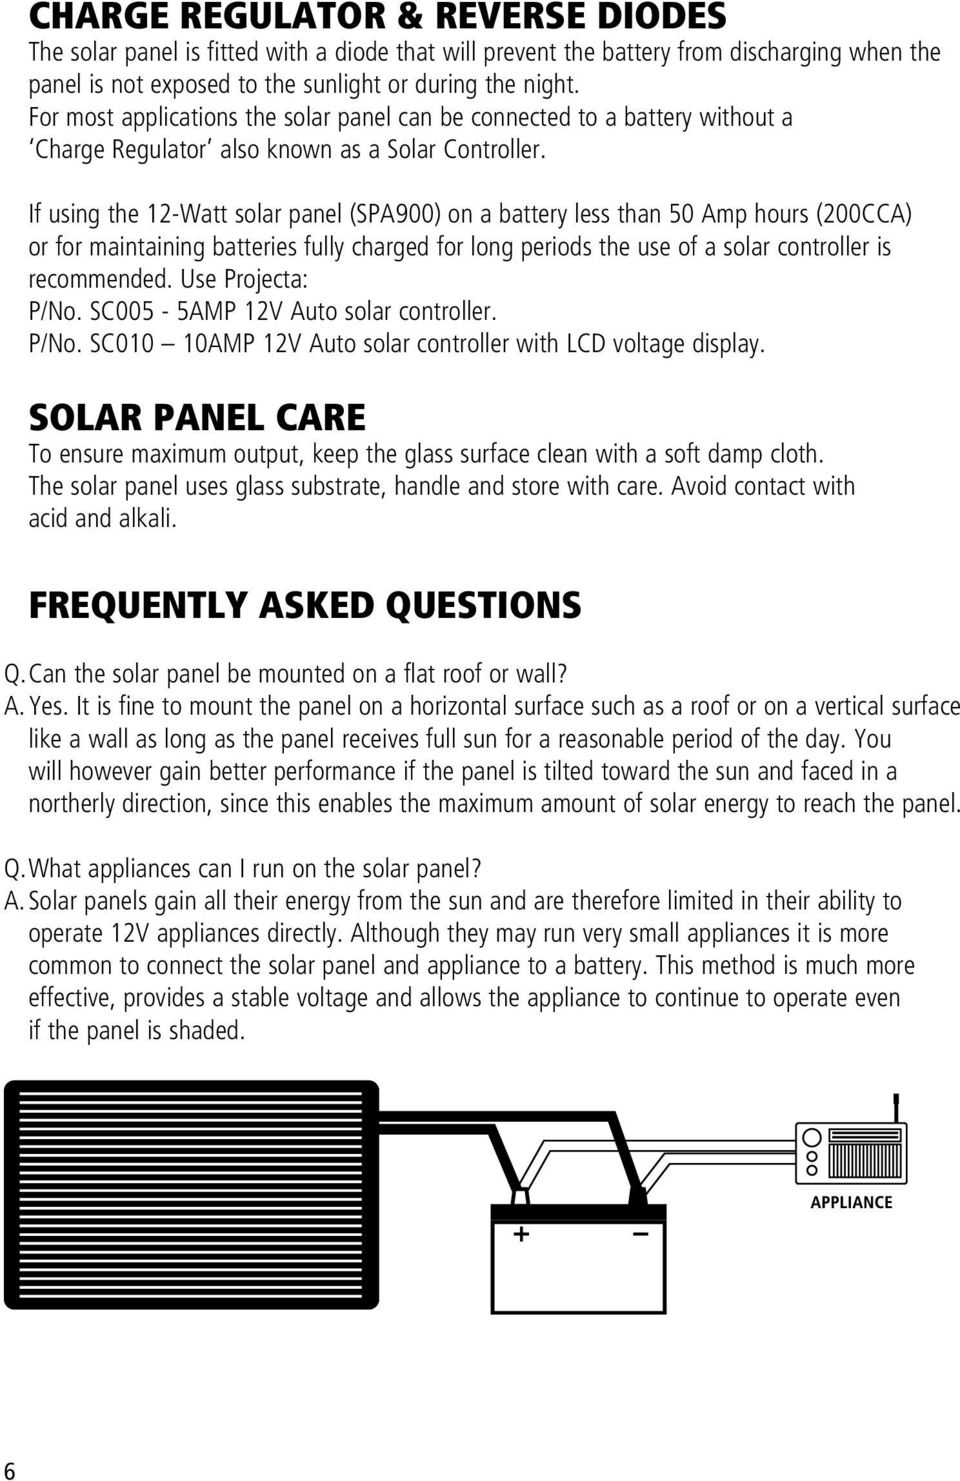 If using the 12-Watt solar panel (SPA900) on a battery less than 50 Amp hours (200CCA) or for maintaining batteries fully charged for long periods the use of a solar controller is recommended.